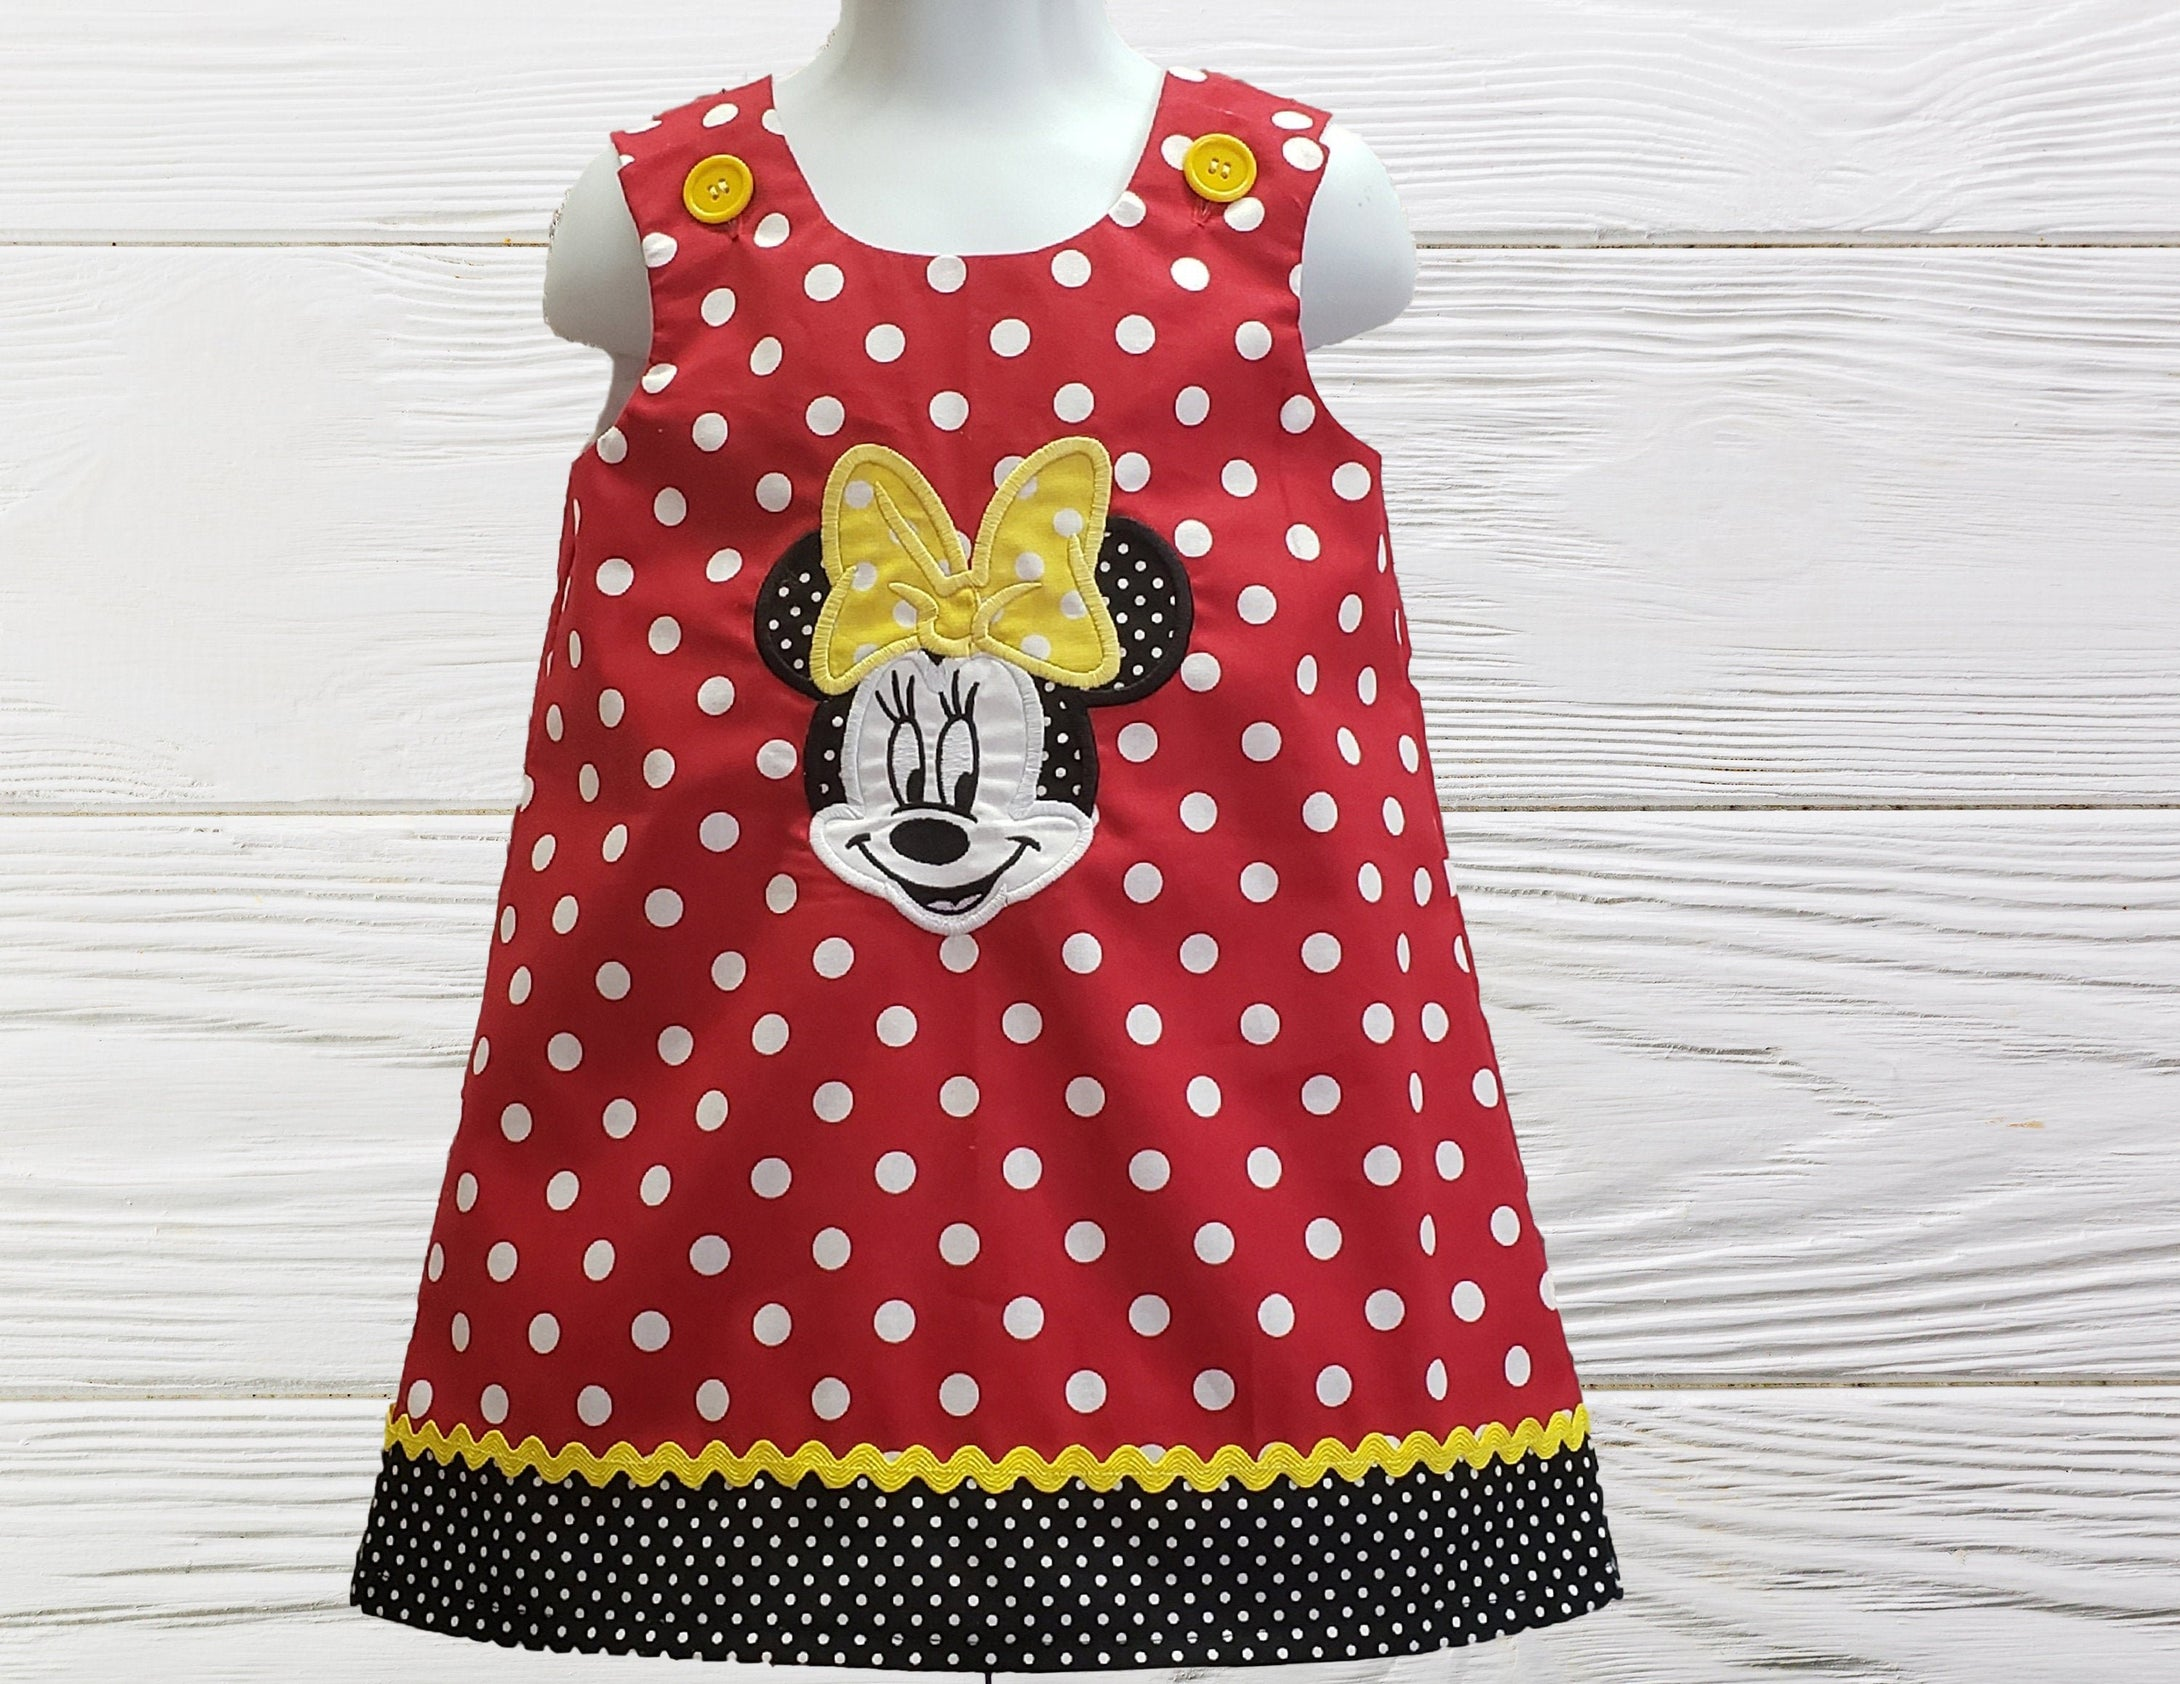 MINNIE BABY OUTFIT - Minnie Mouse Dress - Dress For Baby Girl - Handmade Baby Dress - Minnie Baby Outfit - Polka Dot Dress